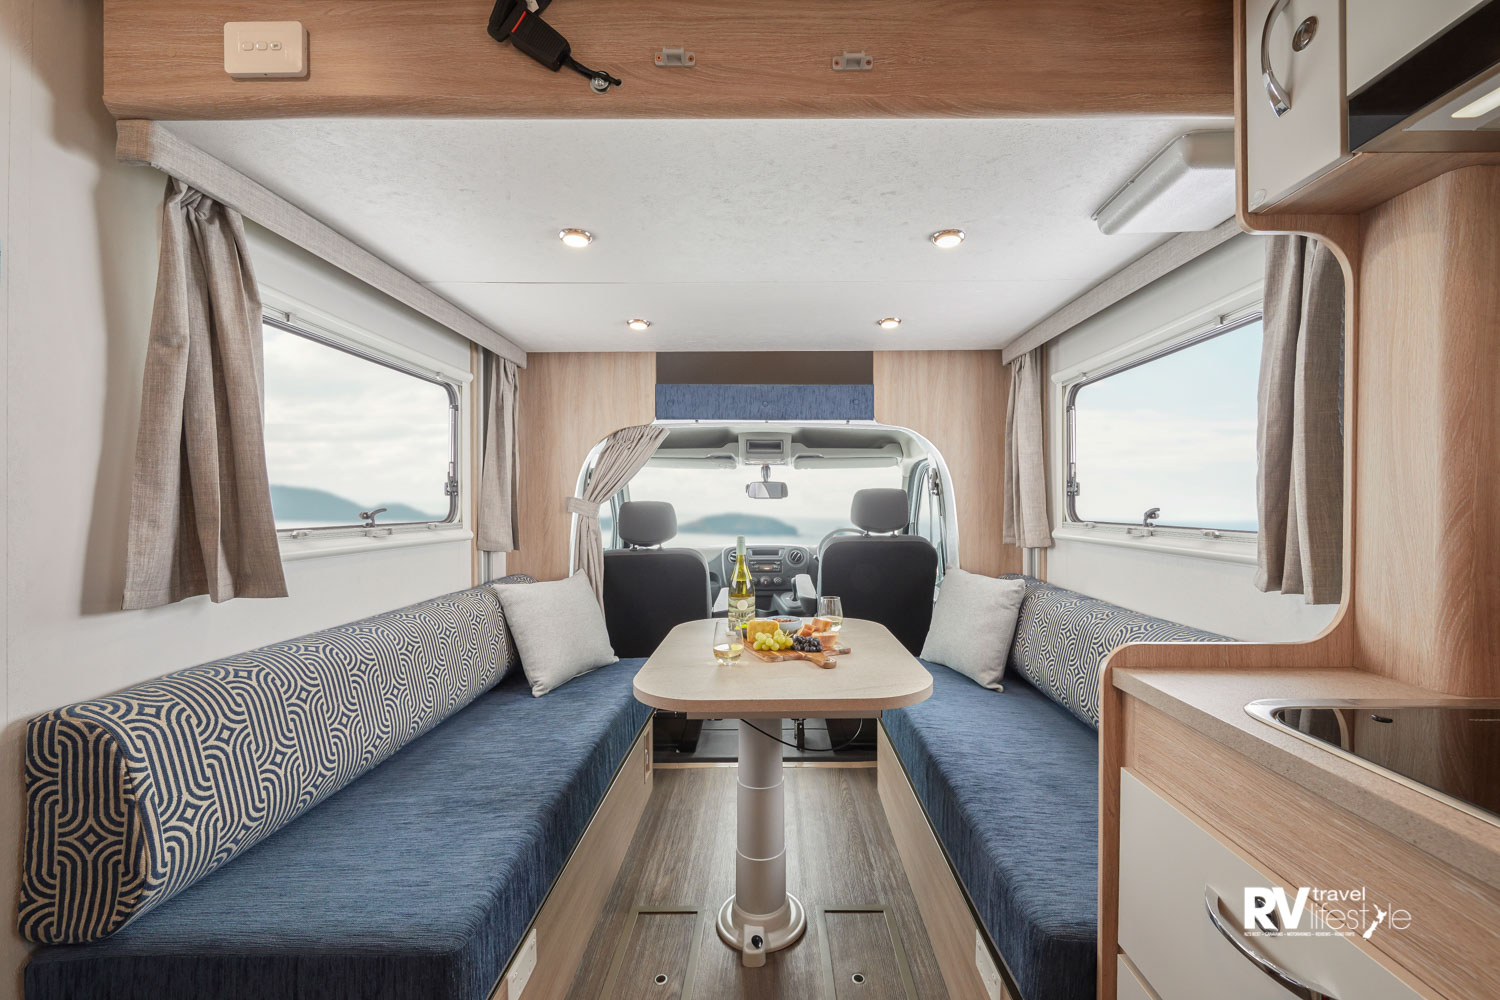 Two long lounge seats with fully adjustable table in the middle, storage hatches on the floor, and in the Luton overcab area even more storage. You don't notice the ceiling is the hidden second bed